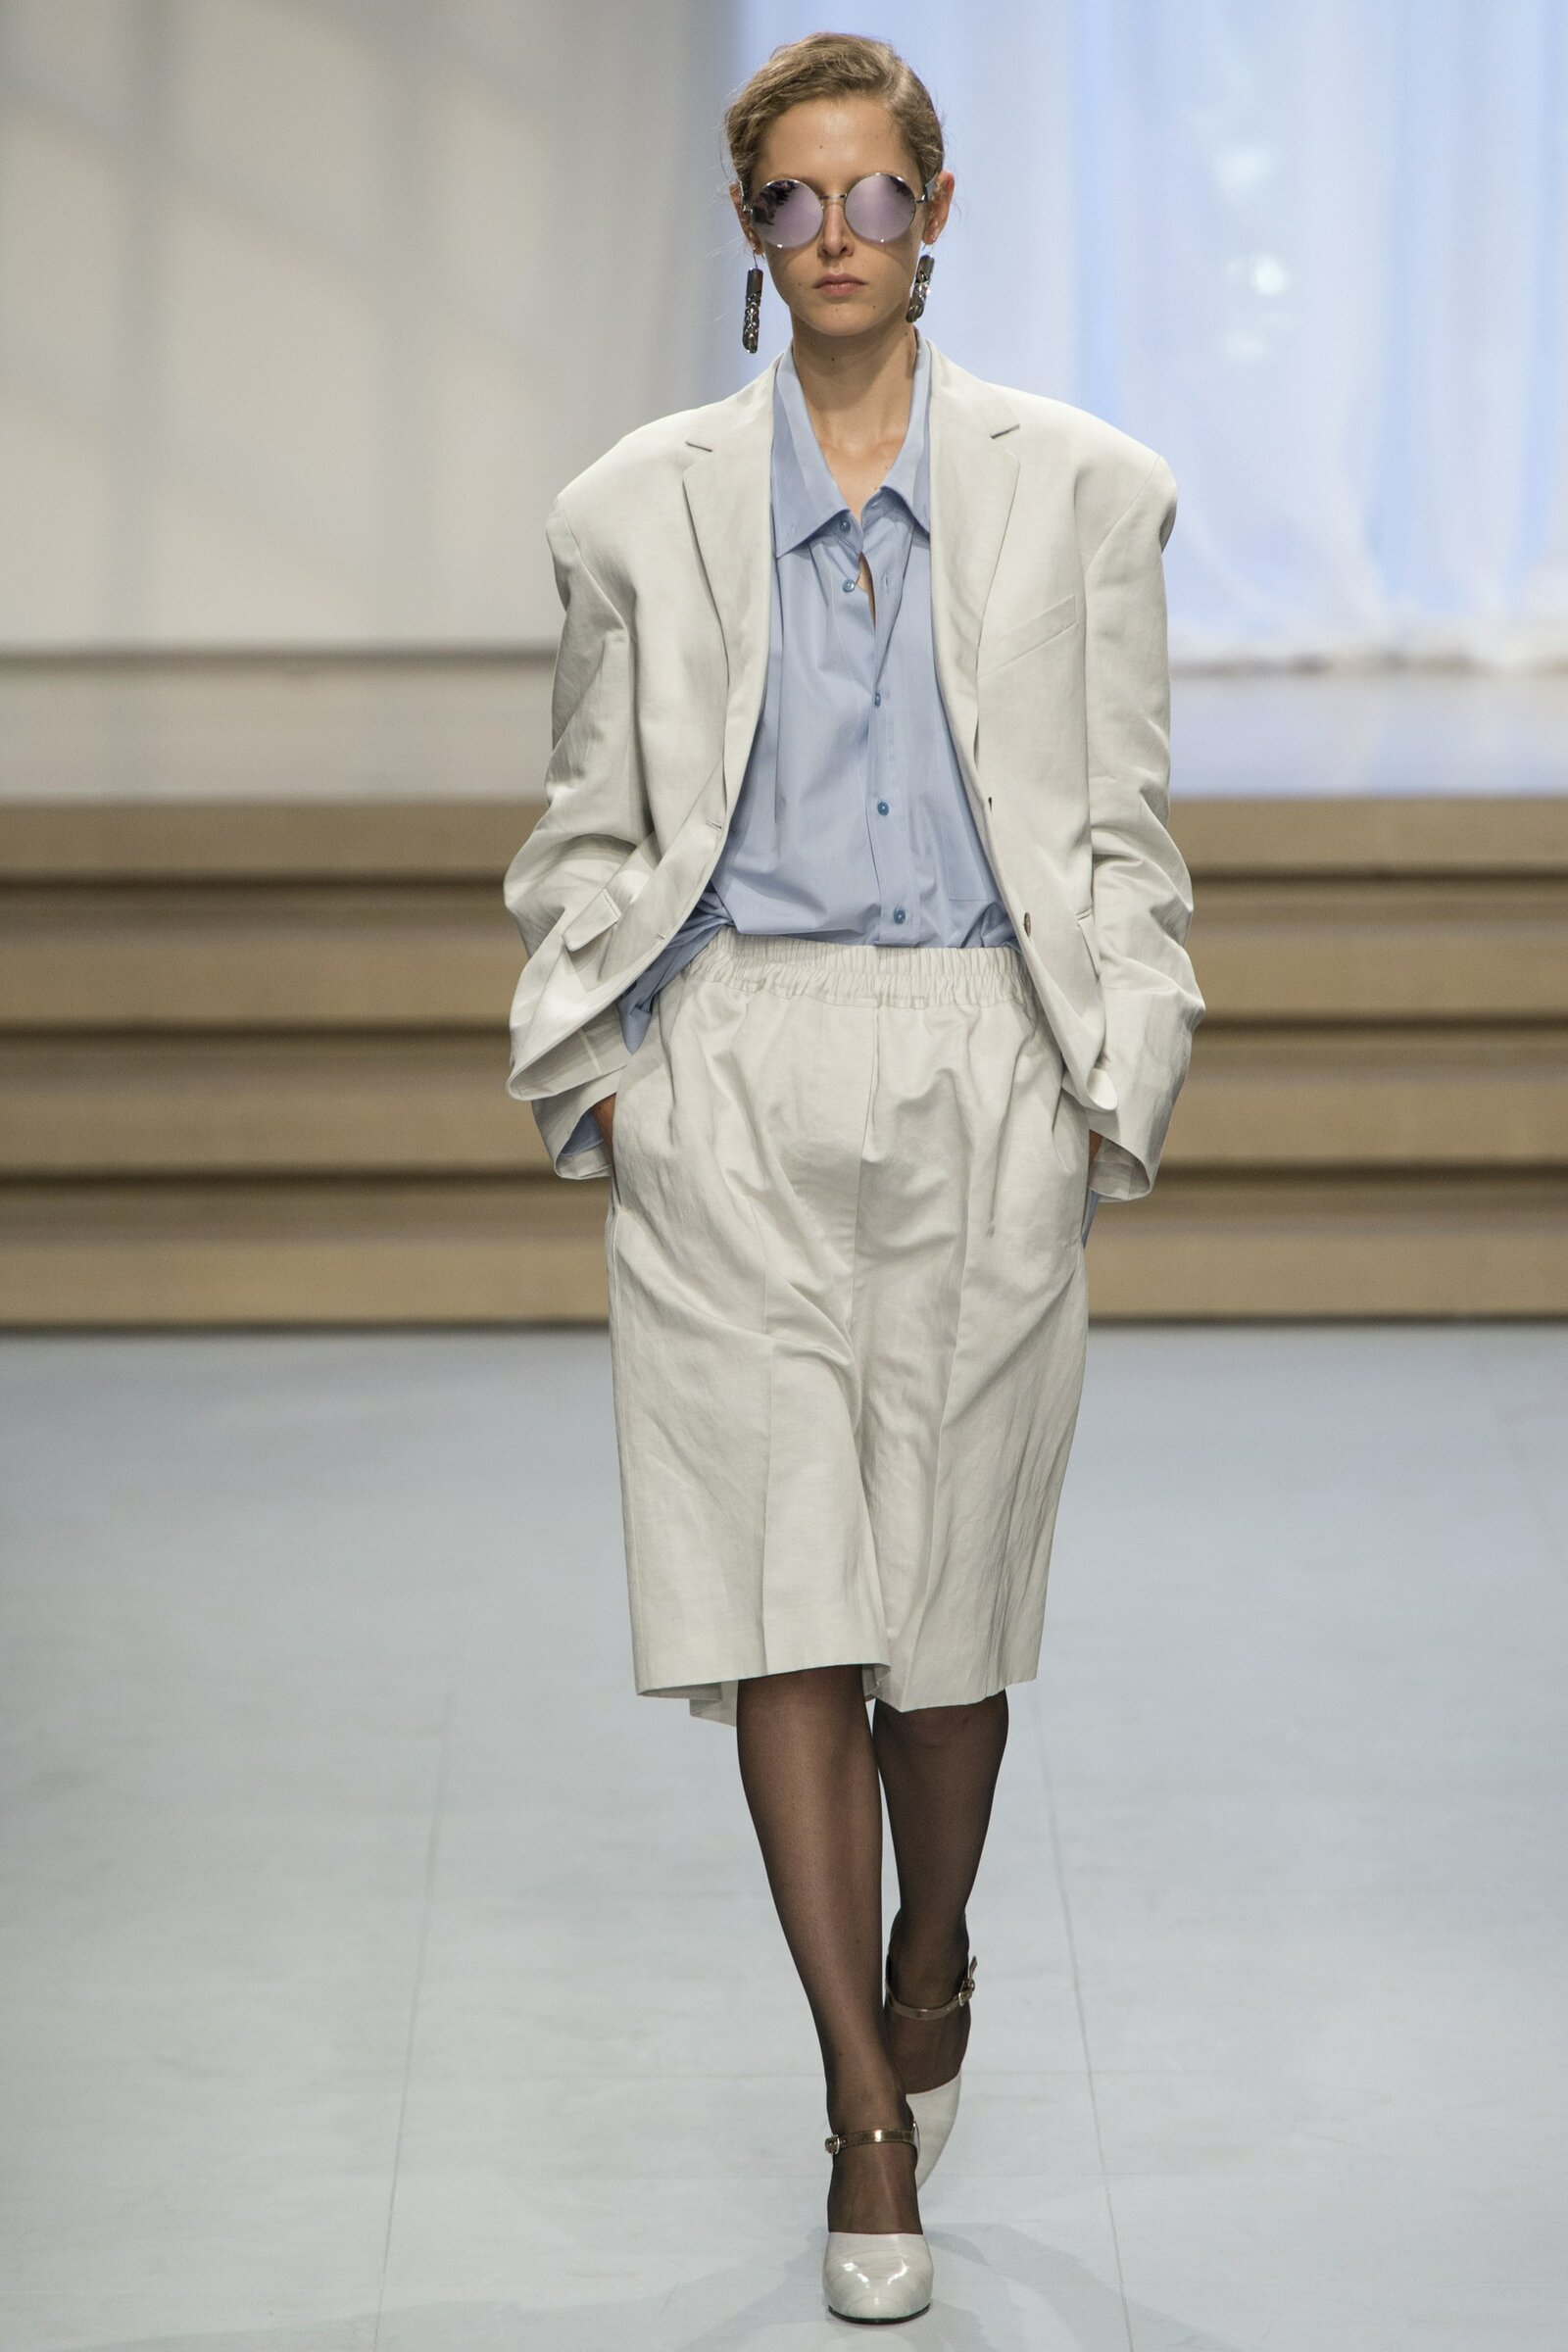 Jil Sander - Milan Fashion Week SS 2017